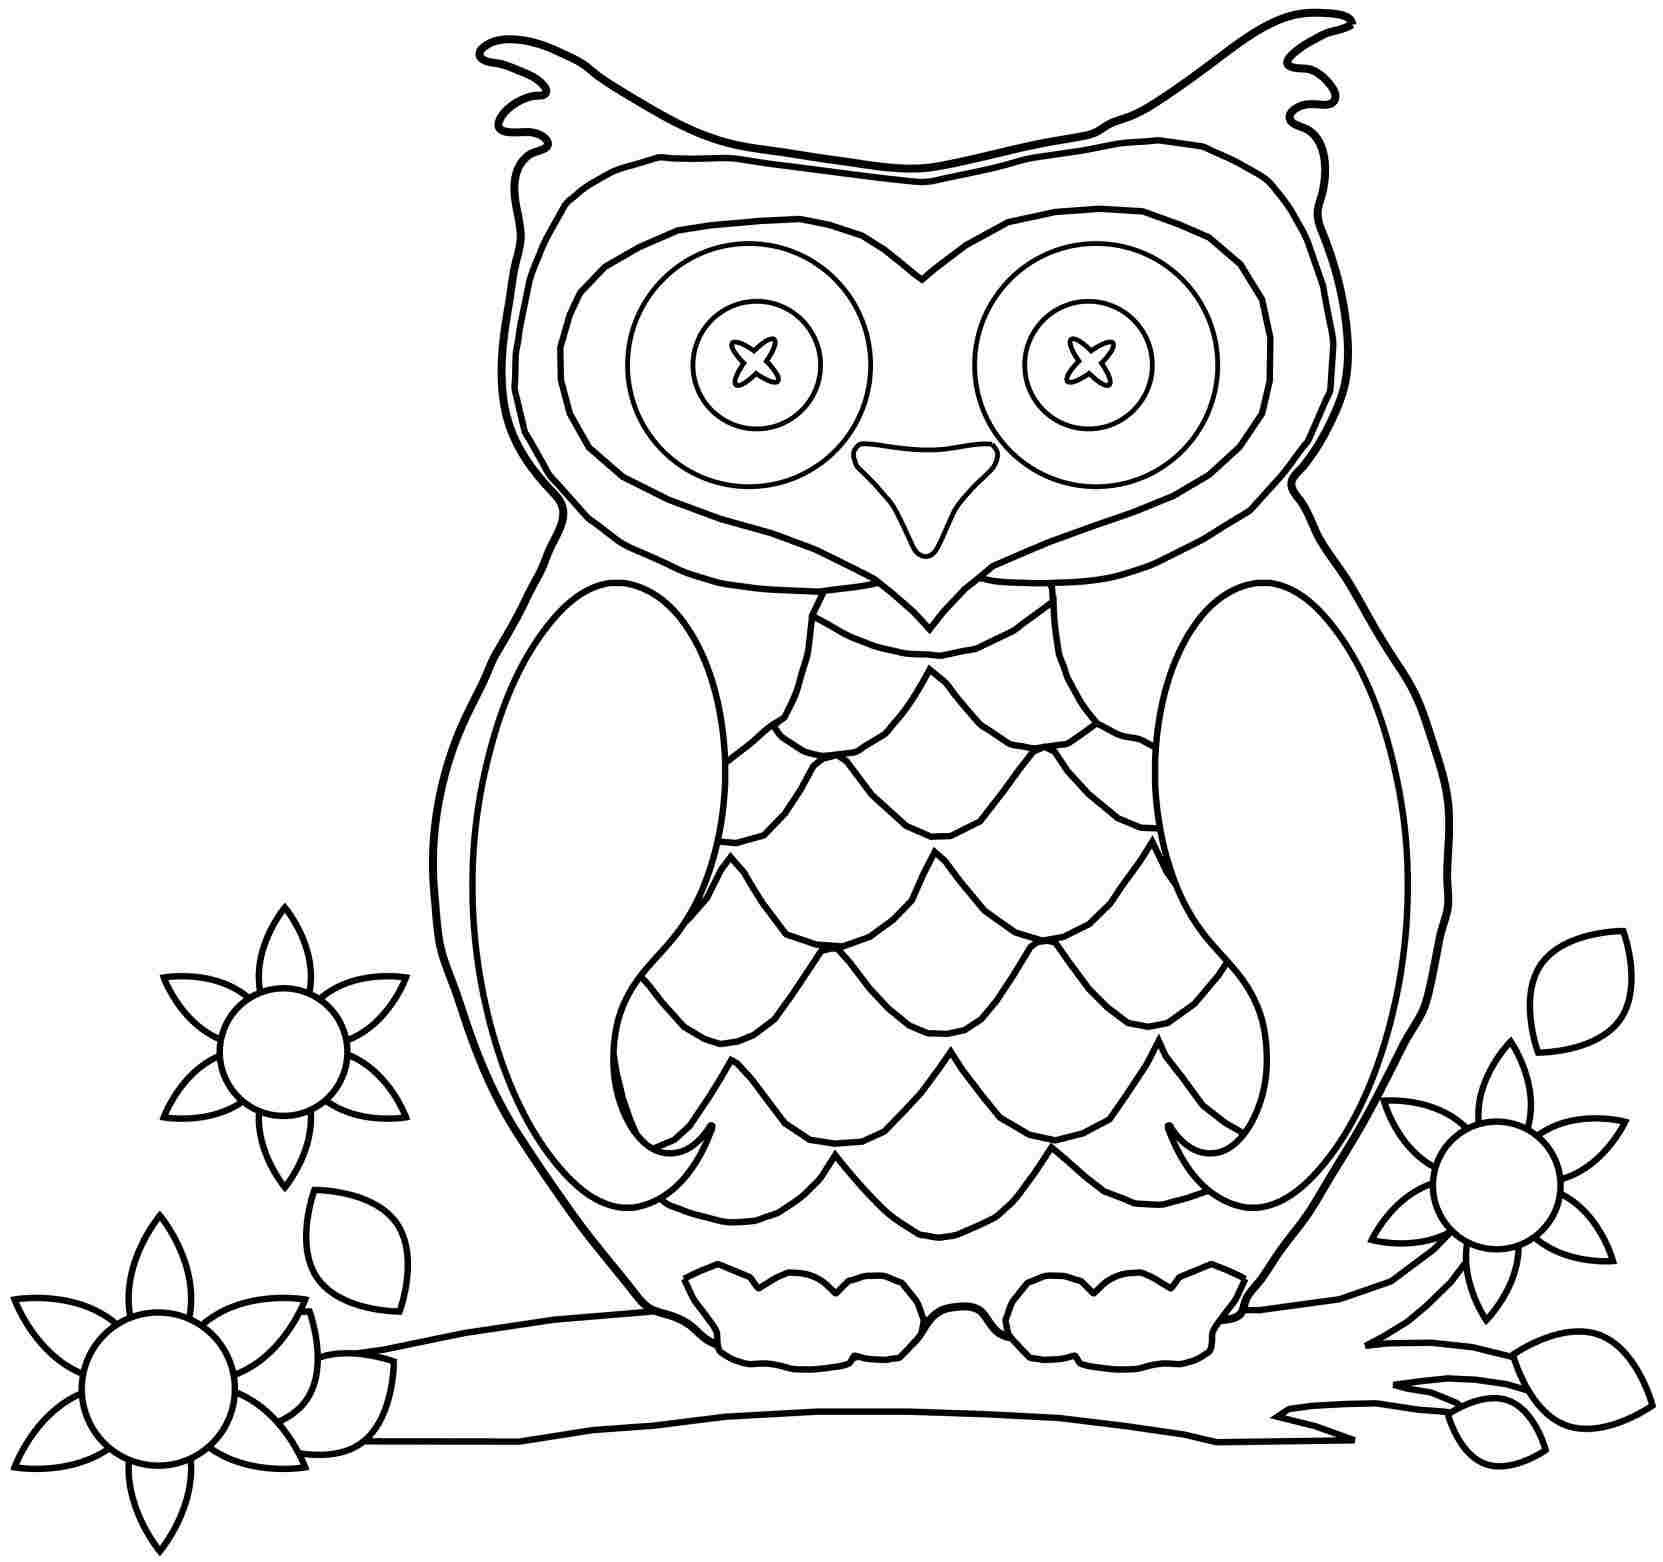 Coloring pages kids fall - Free Preschool Fall Coloring Pages Printable Free Colouring Sheets Animal Owl For Girls Boys